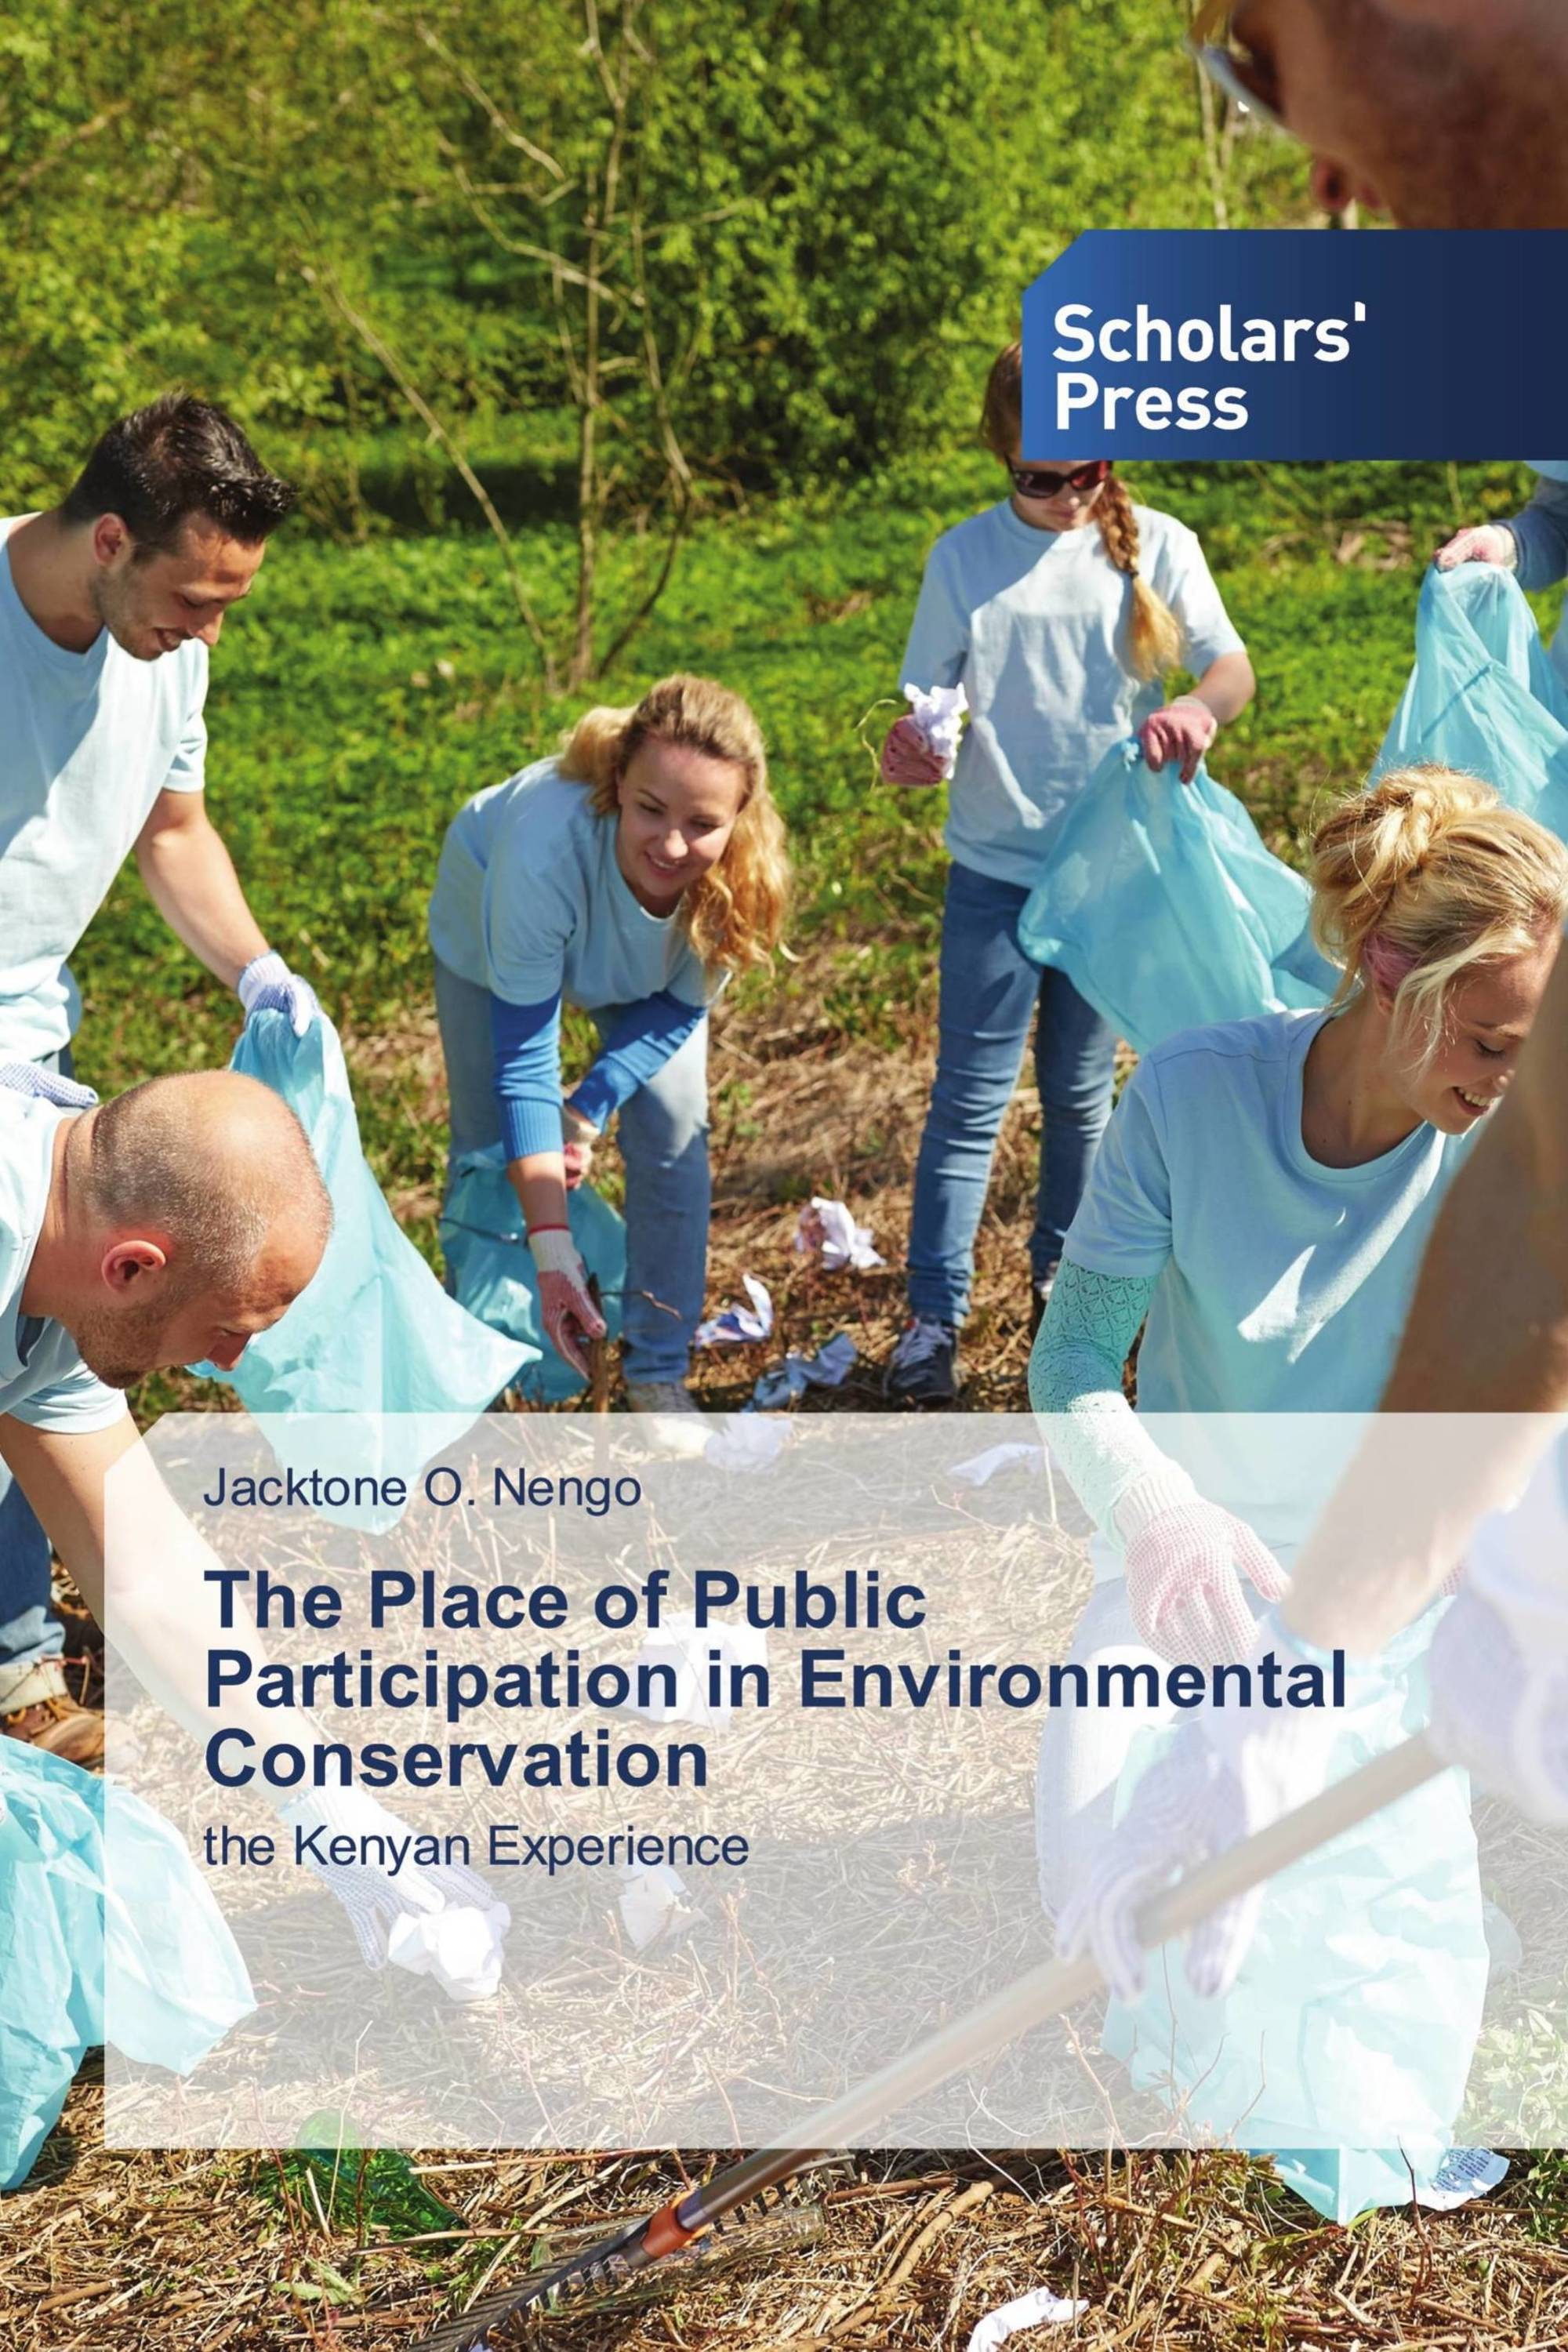 The Place of Public Participation in Environmental Conservation